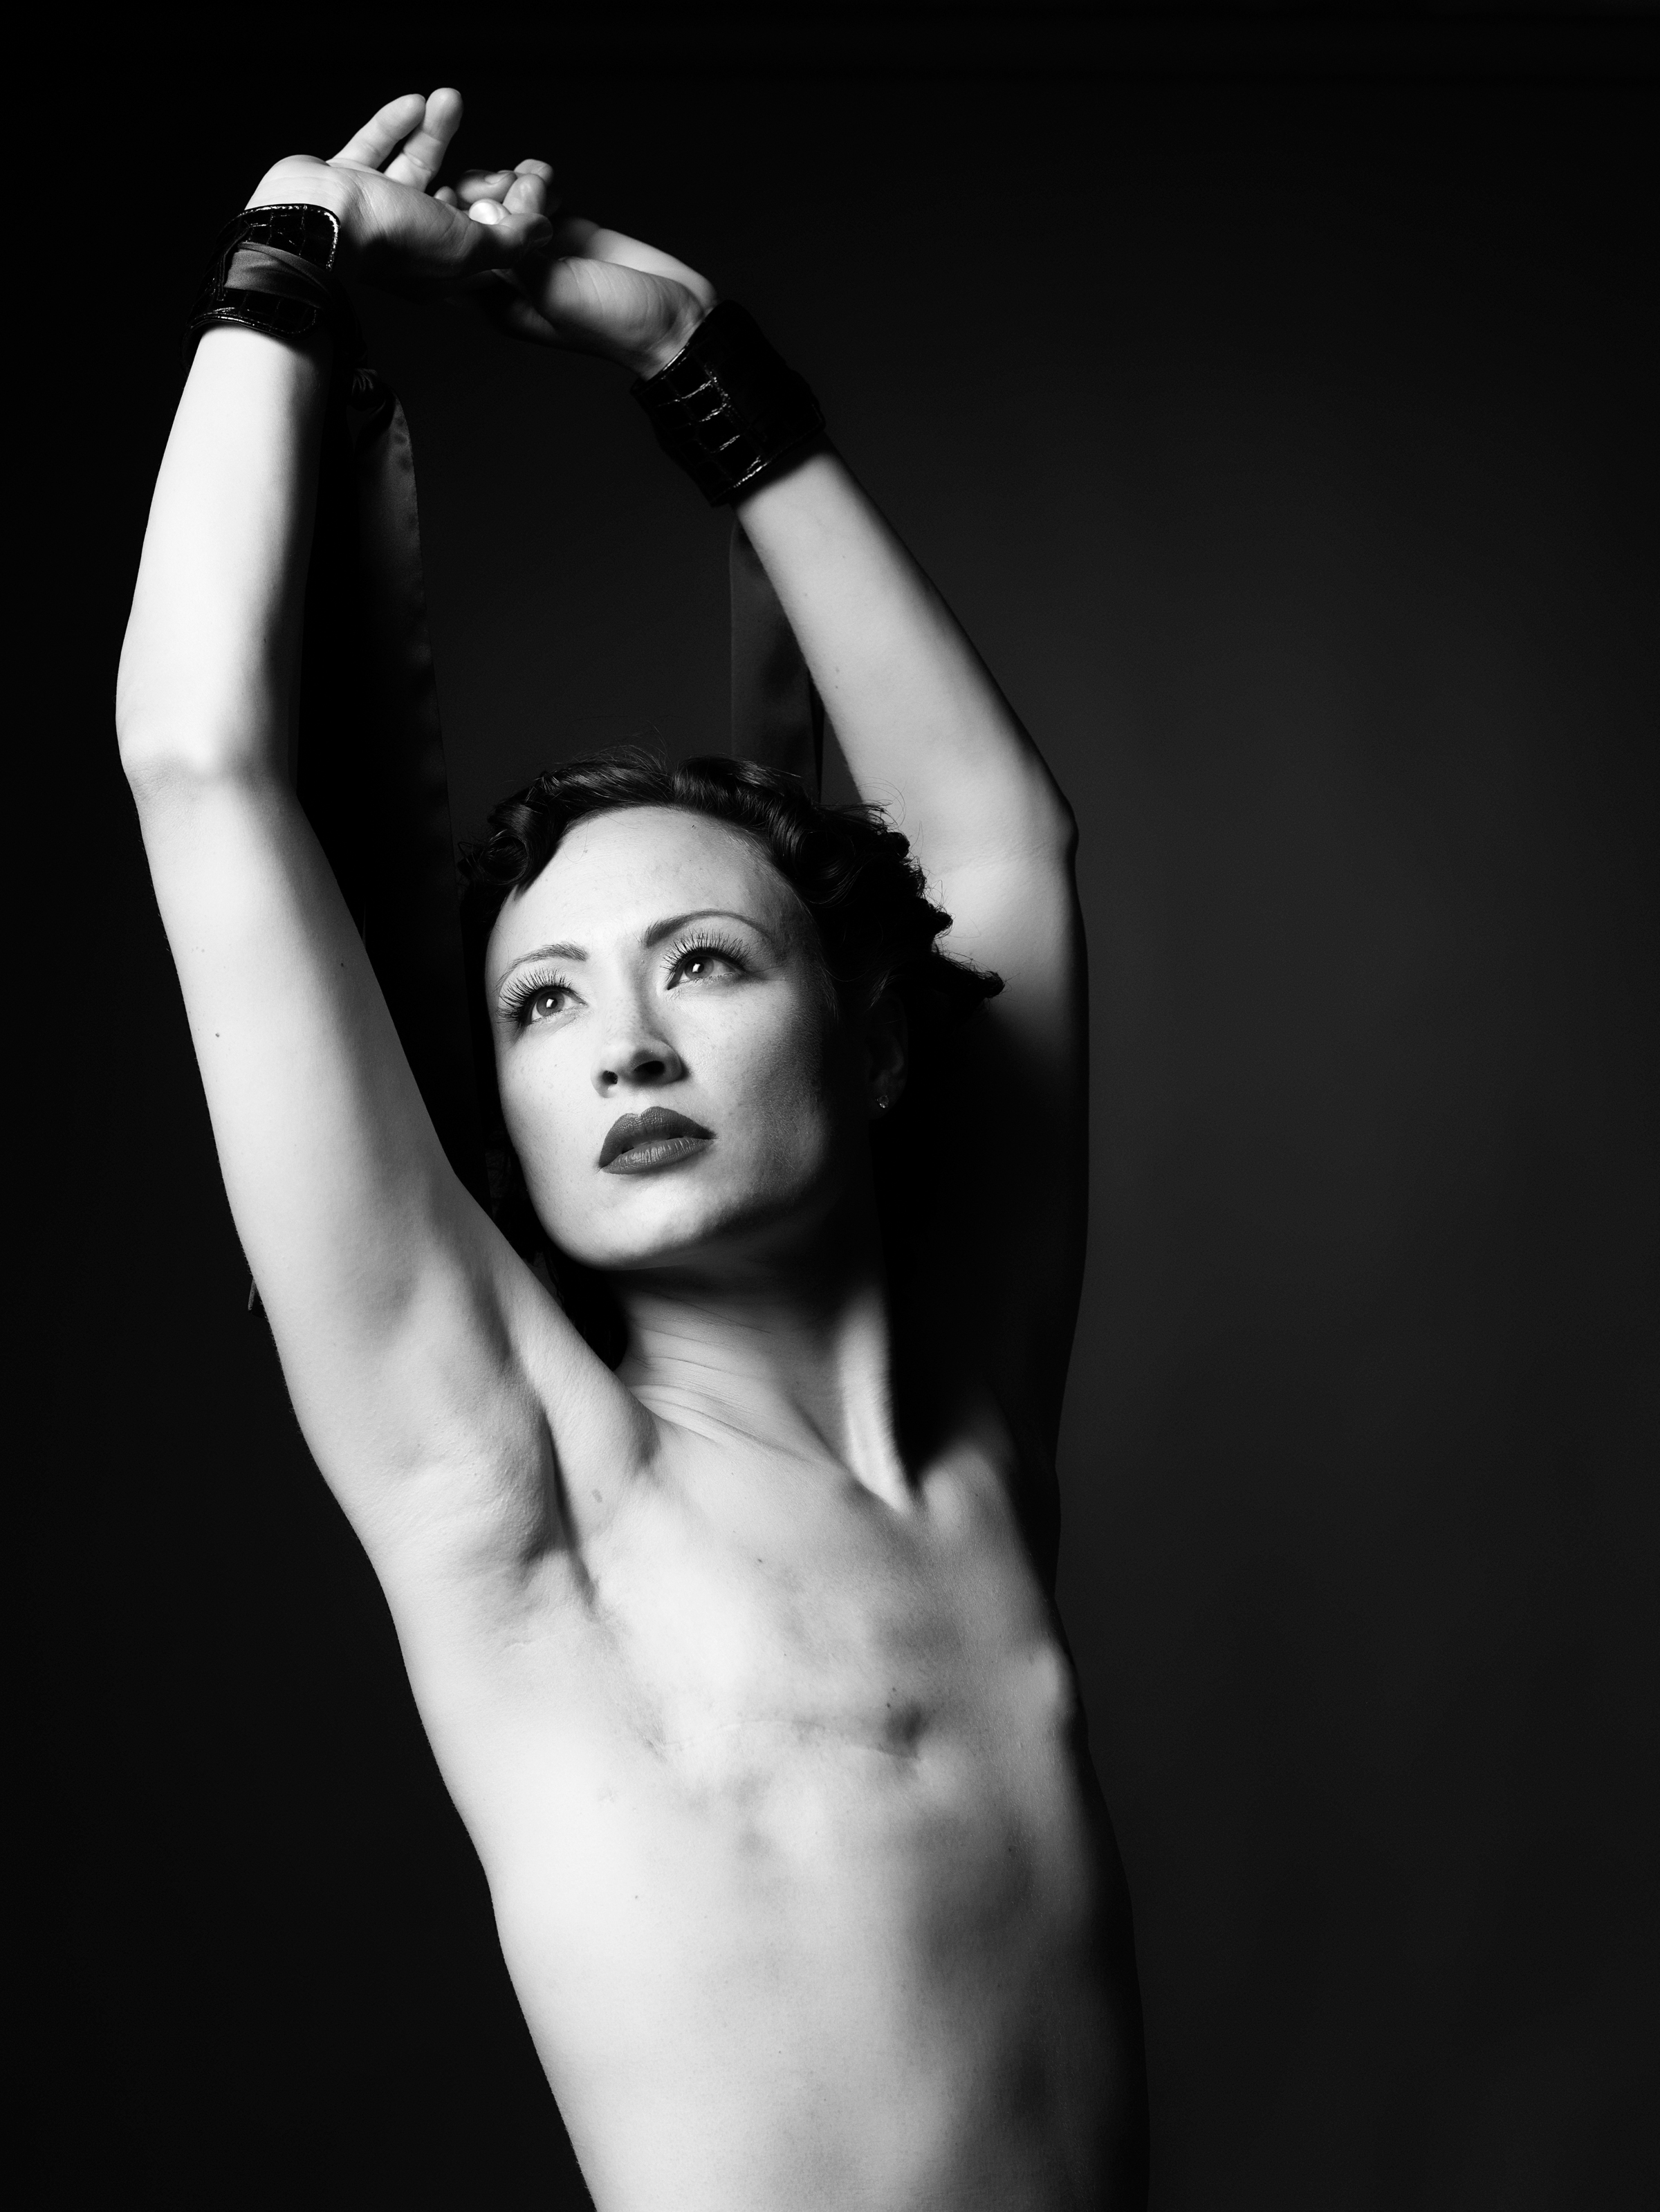 Breast Cancer Awareness Coverage 2010: The Scar Project